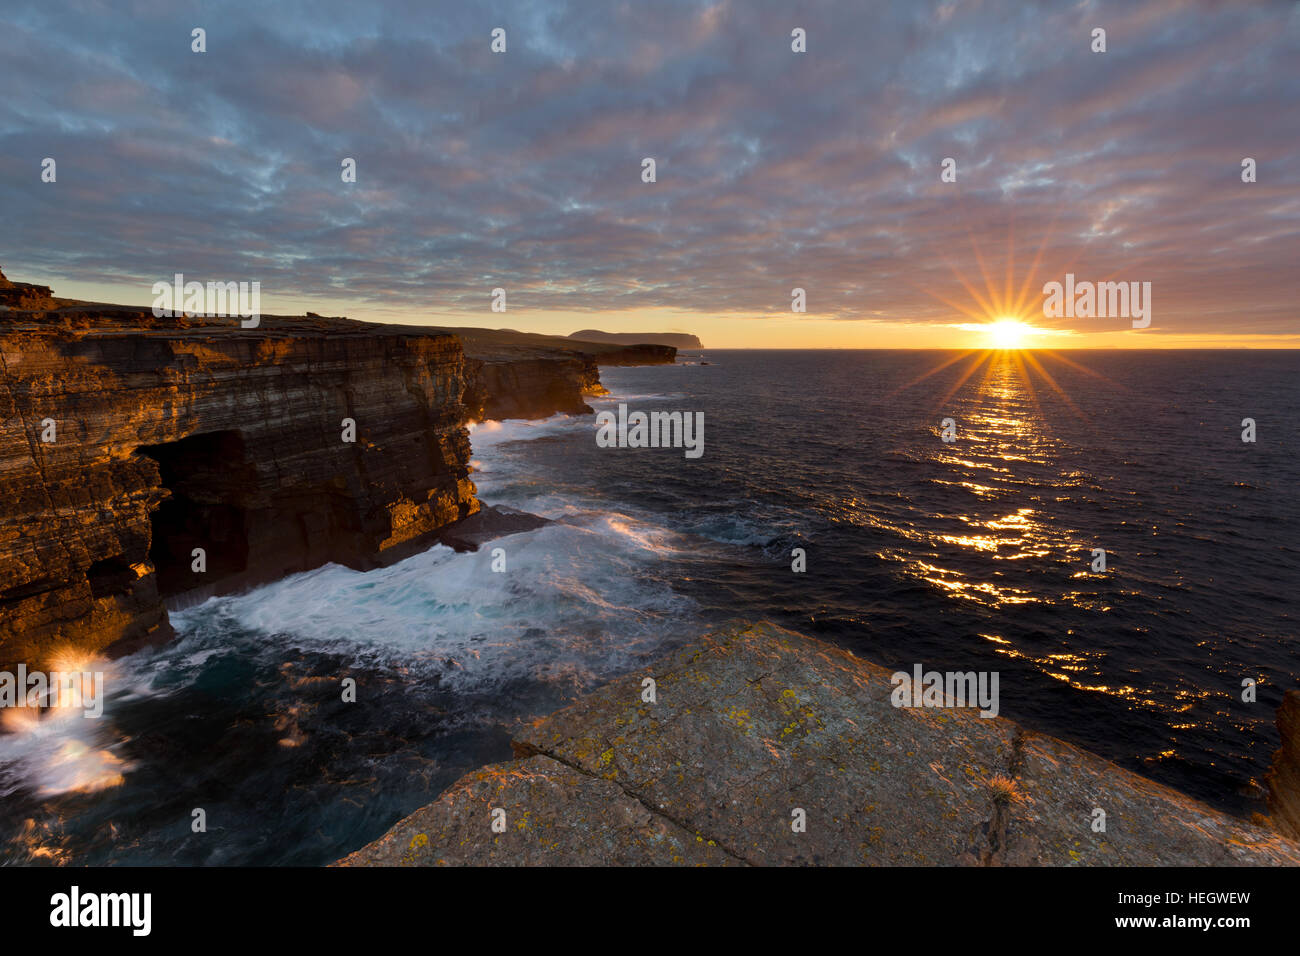 Orkney Islands winter sunset at Yesnaby - Stock Image